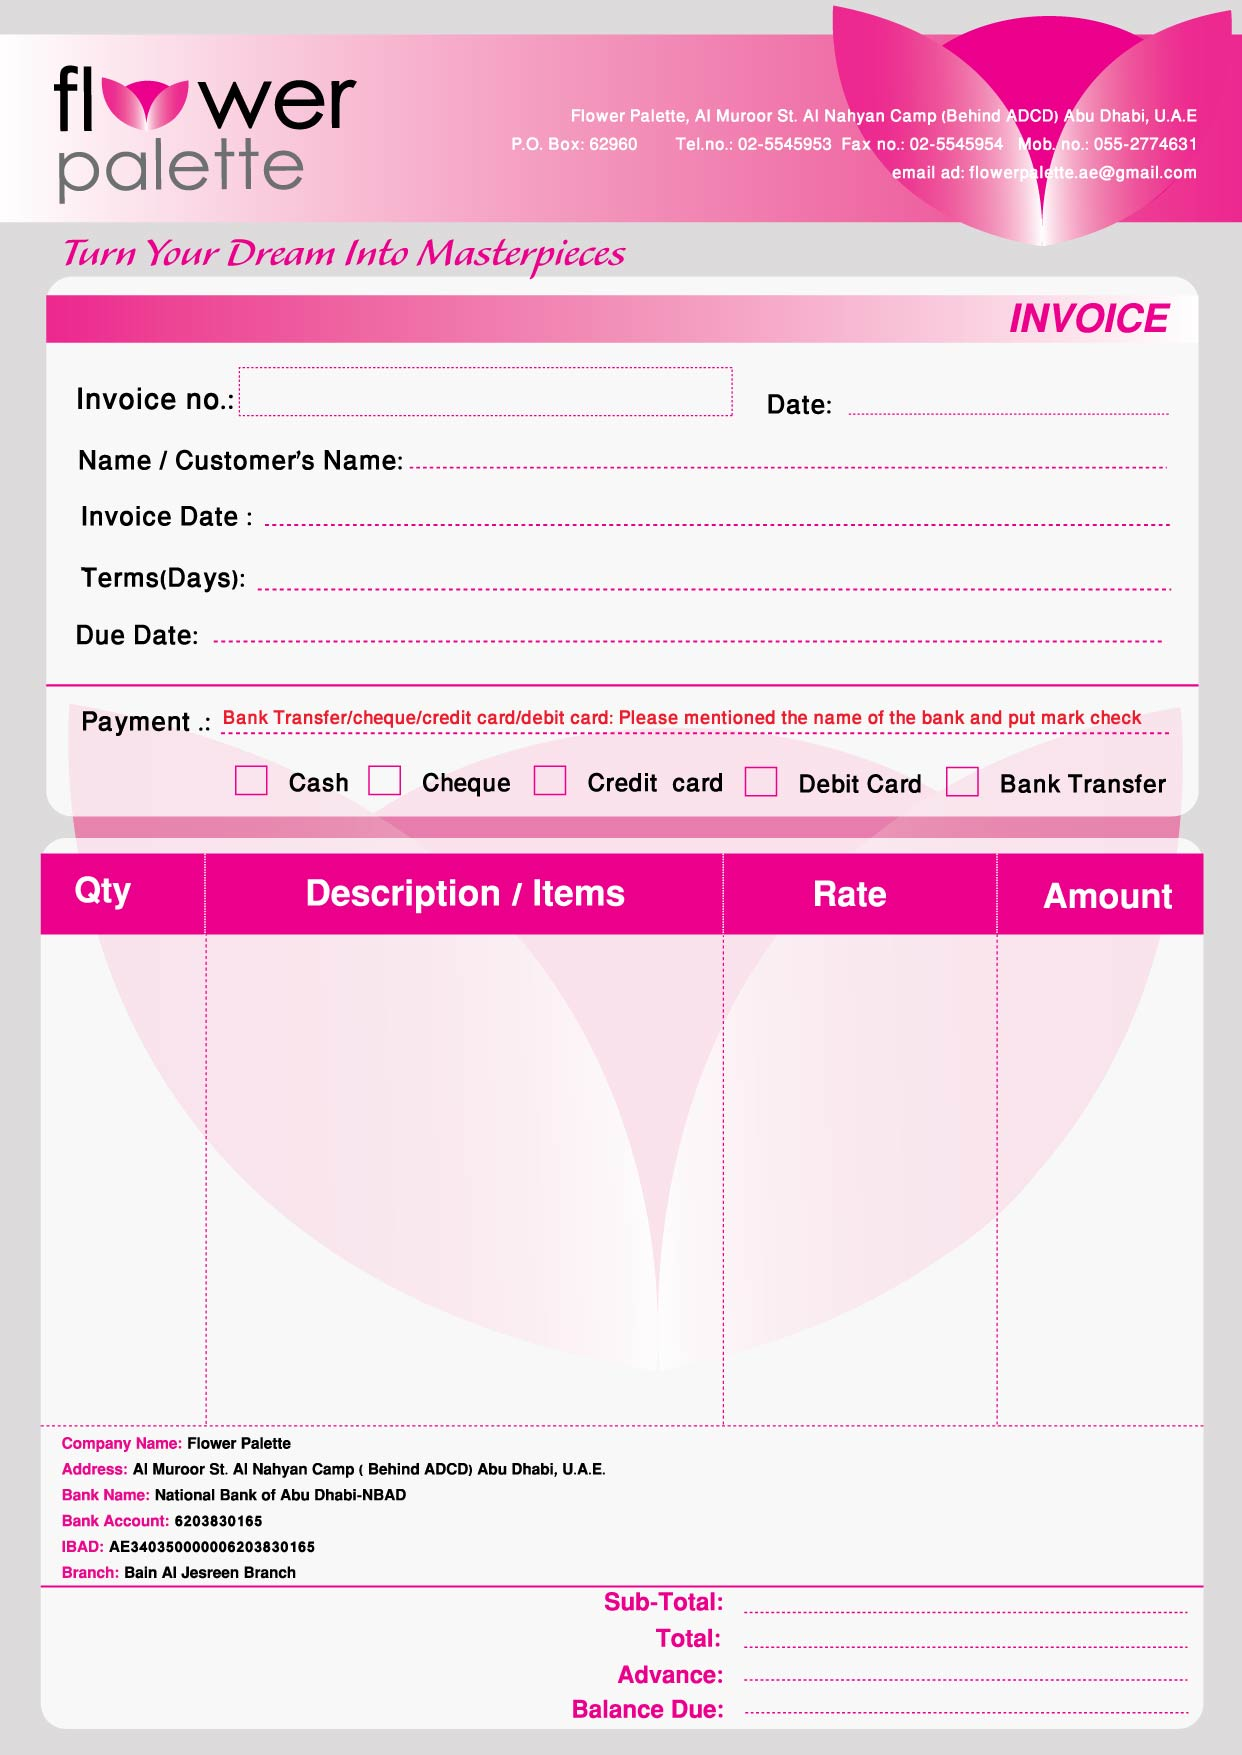 Wedding Flowers Quote Form Wedding Flower Quote Template The Best - Flower shop invoice template